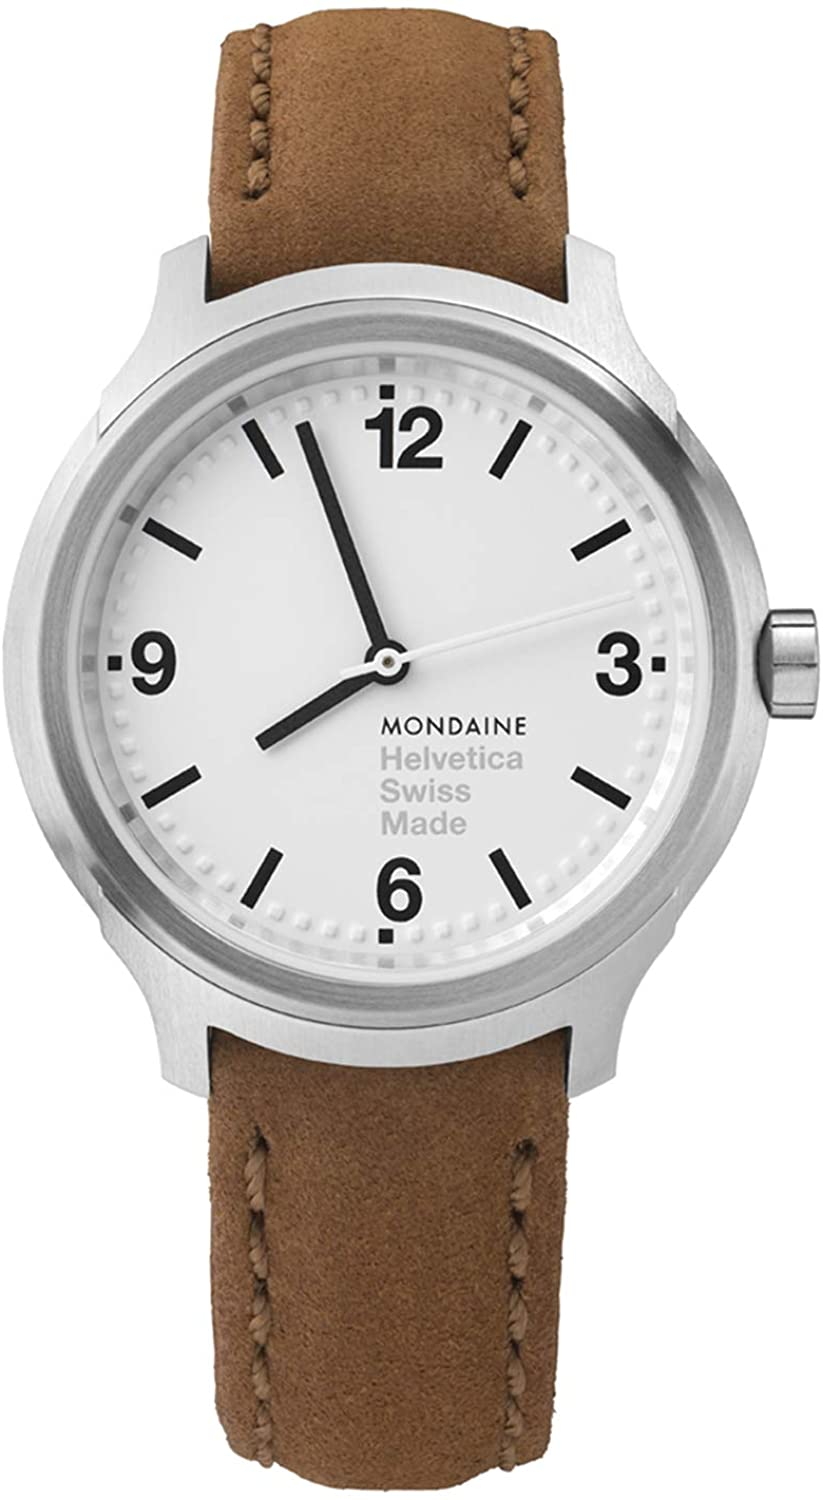 Mondaine Helvetica No 1 Wrist Watch for Men (MH1.B3110.LG) Swiss Made, Tan Stitched Brown Leather Strap, Silver Stainless Steel Case White Face, Black Hands & Numbers